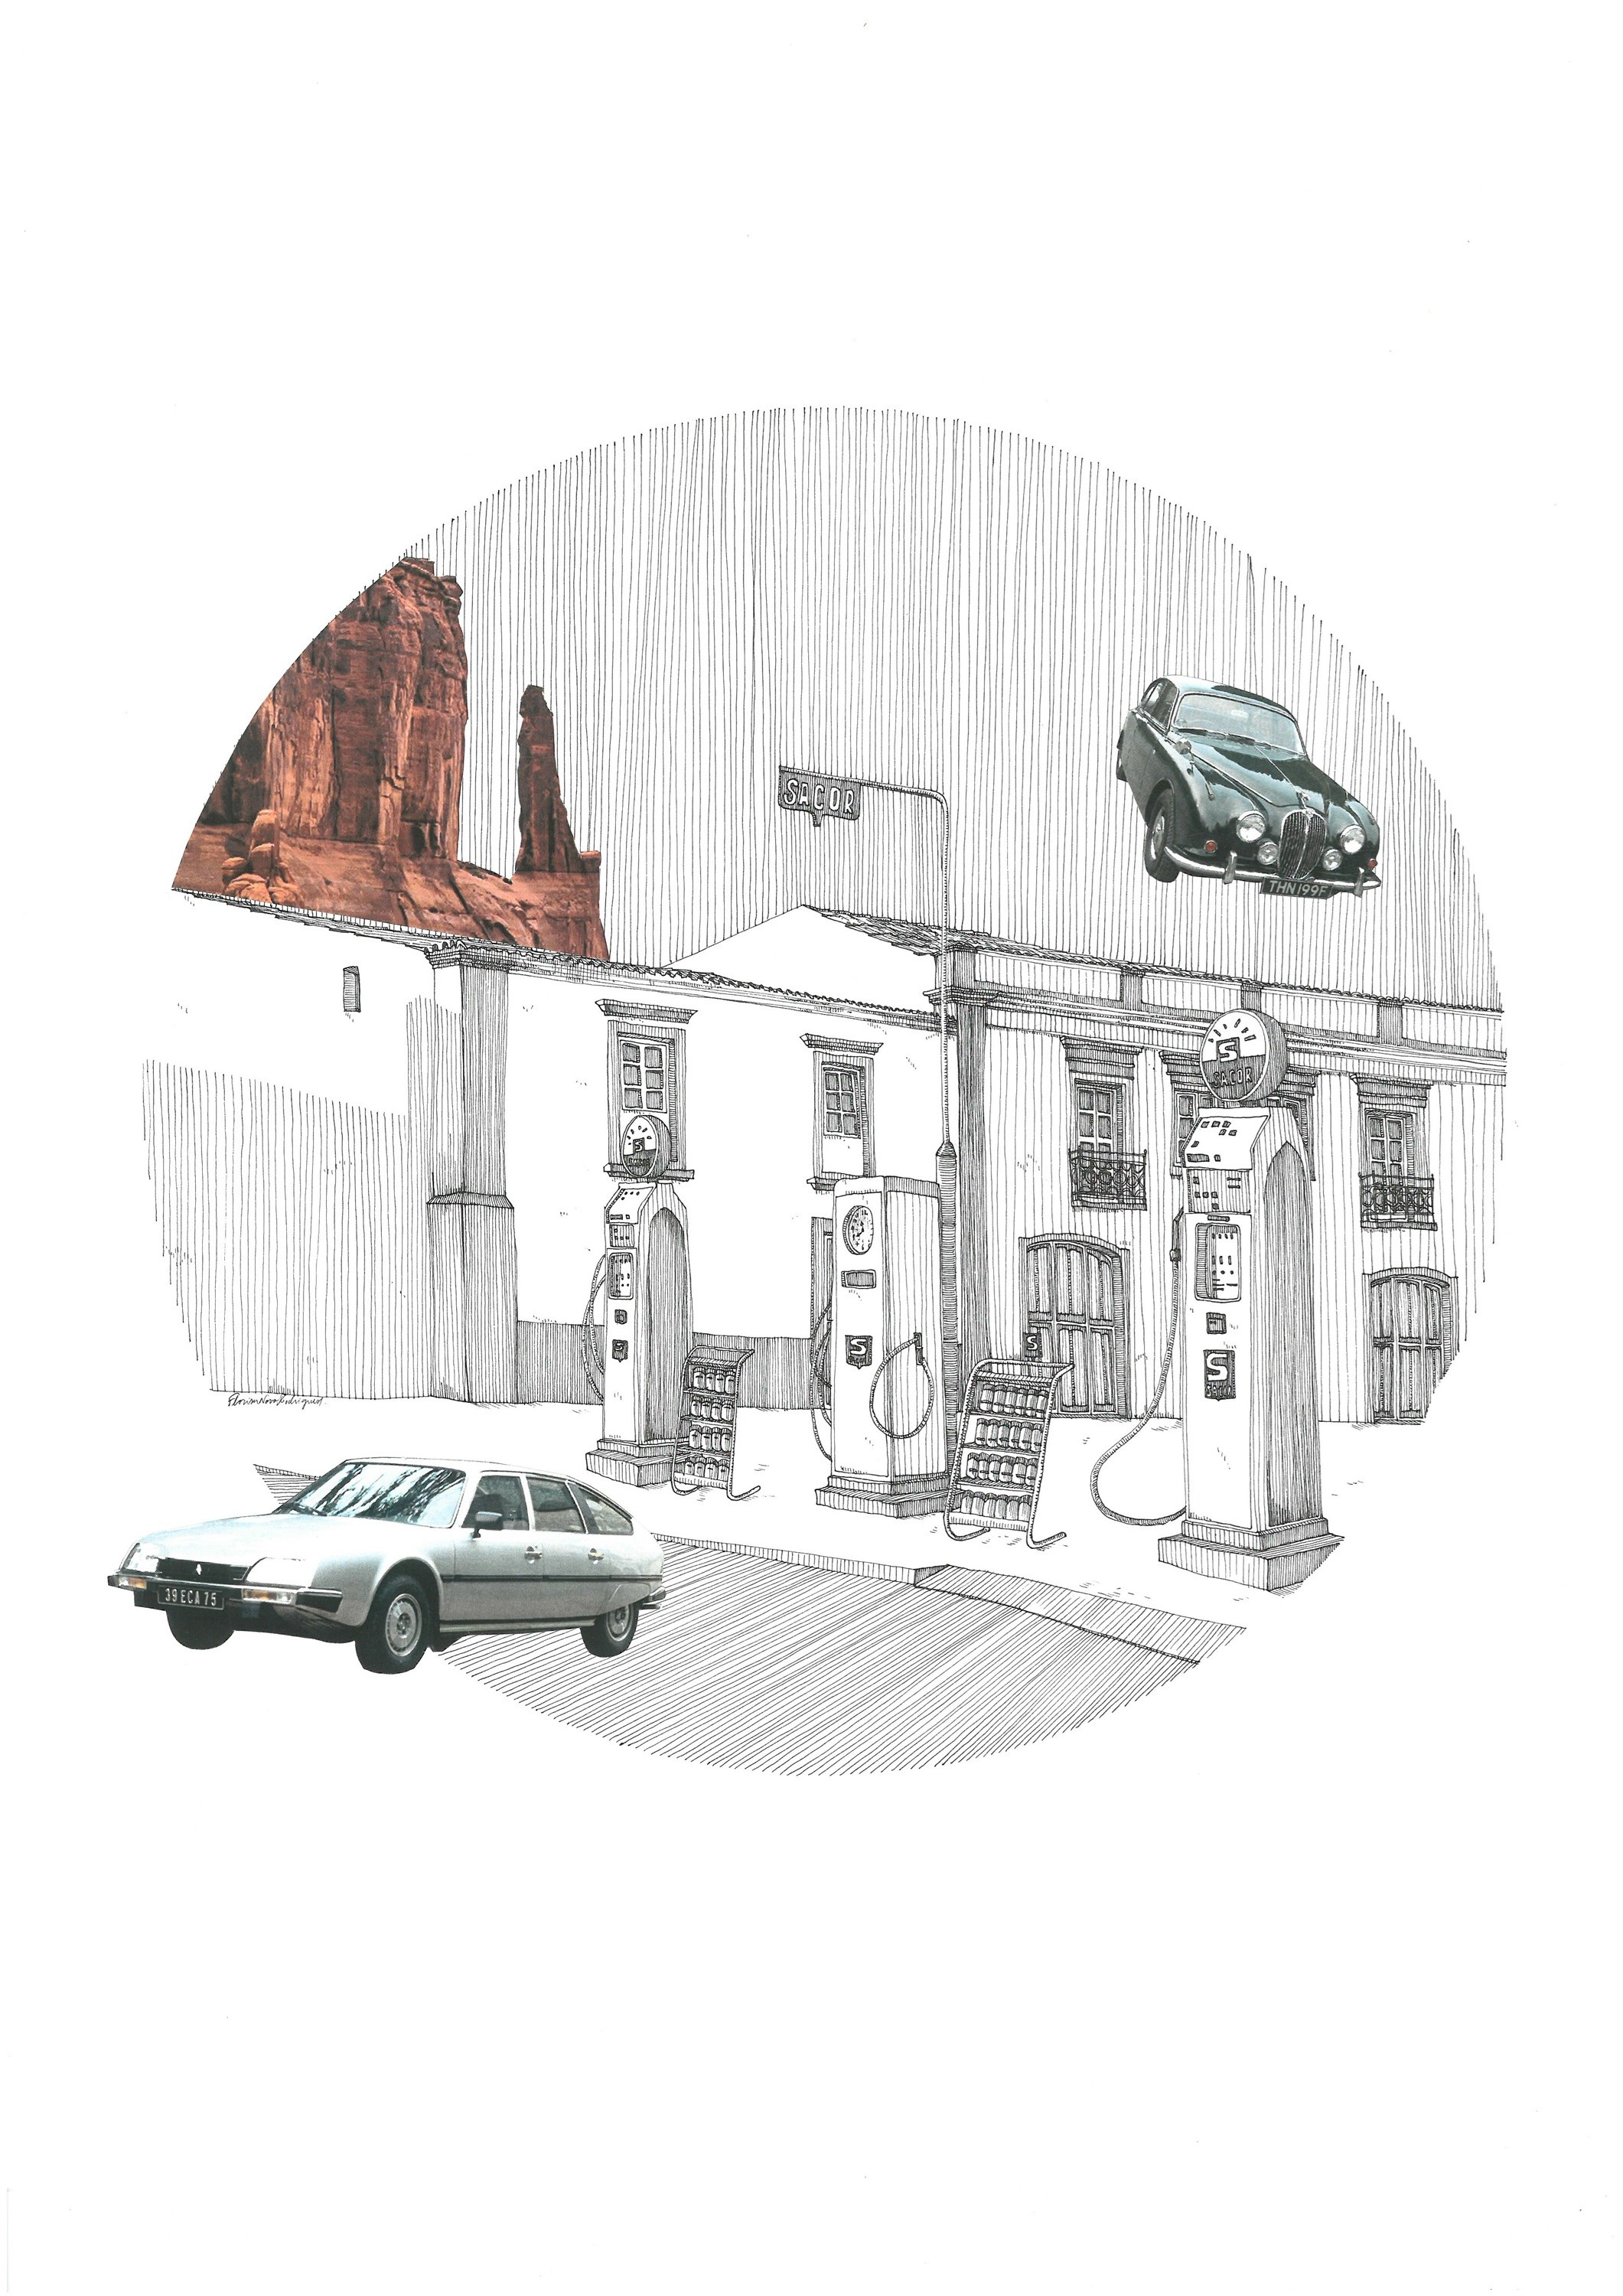 Jaguar Mark 1, original Architecture Collage Drawing and Illustration by Florisa Novo Rodrigues